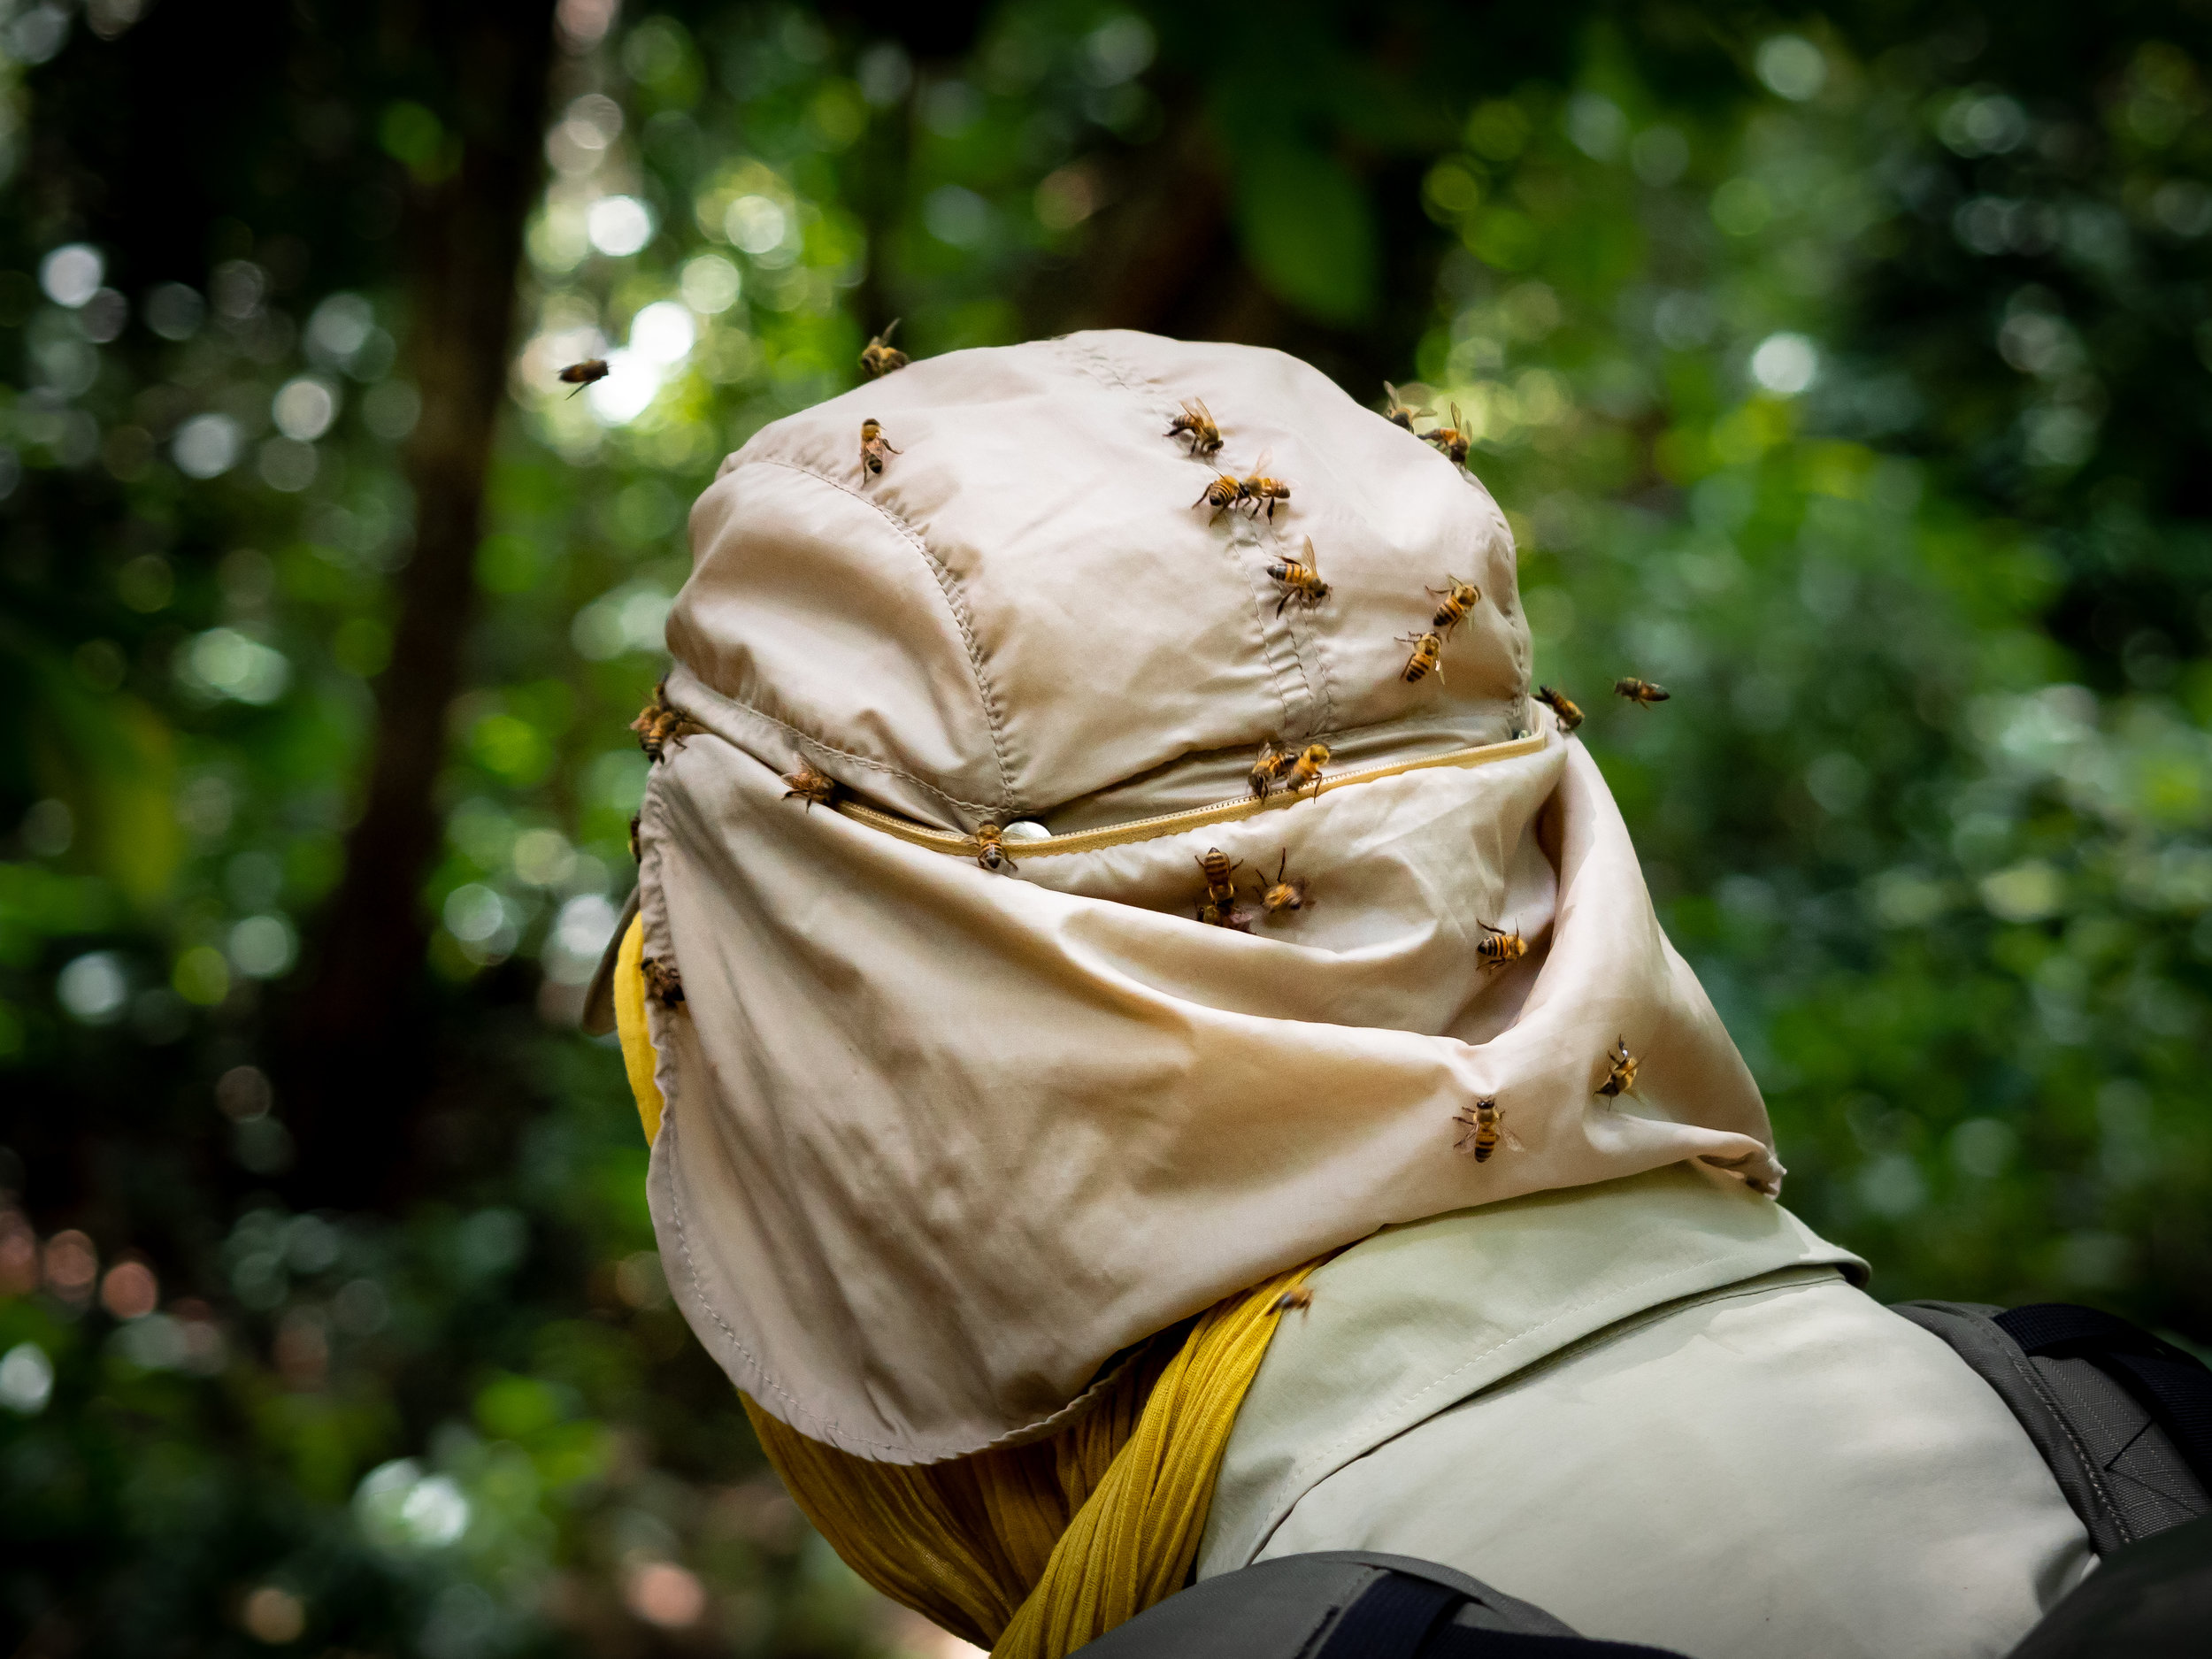 Bees swarming on Stijn in the Congo rainforest